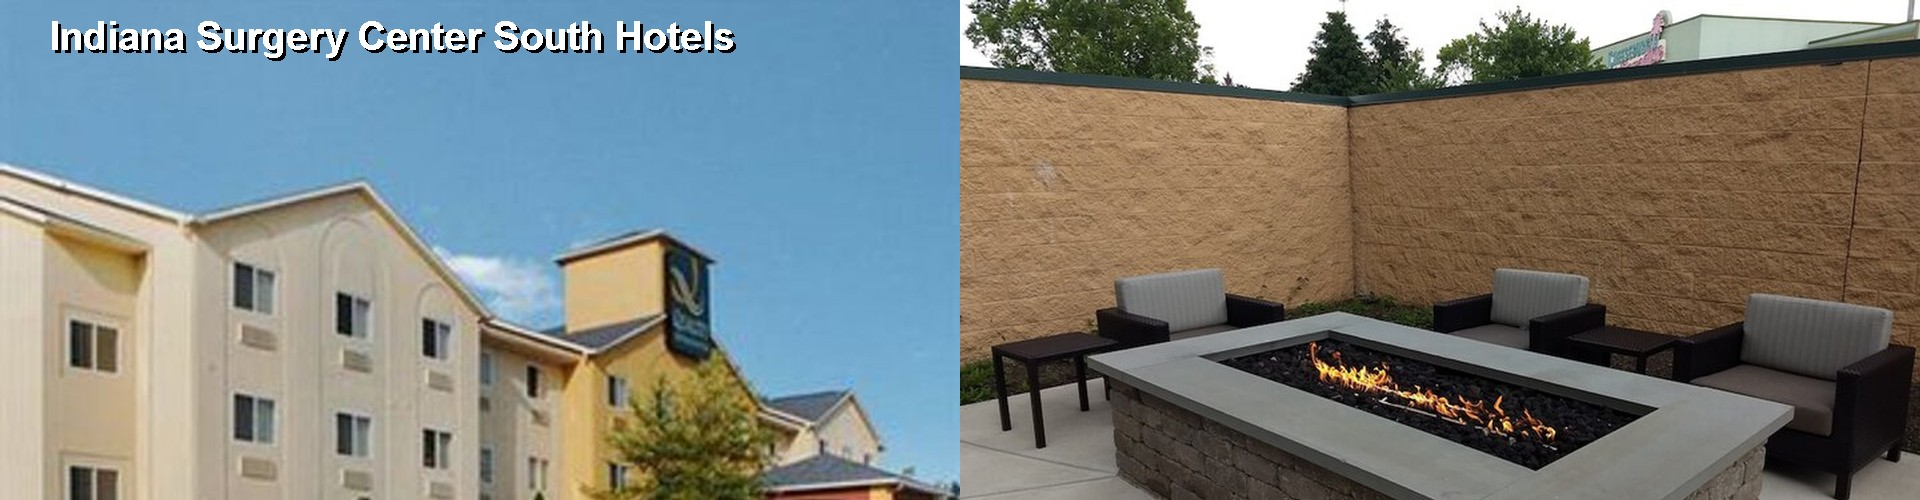 5 Best Hotels Near Indiana Surgery Center South